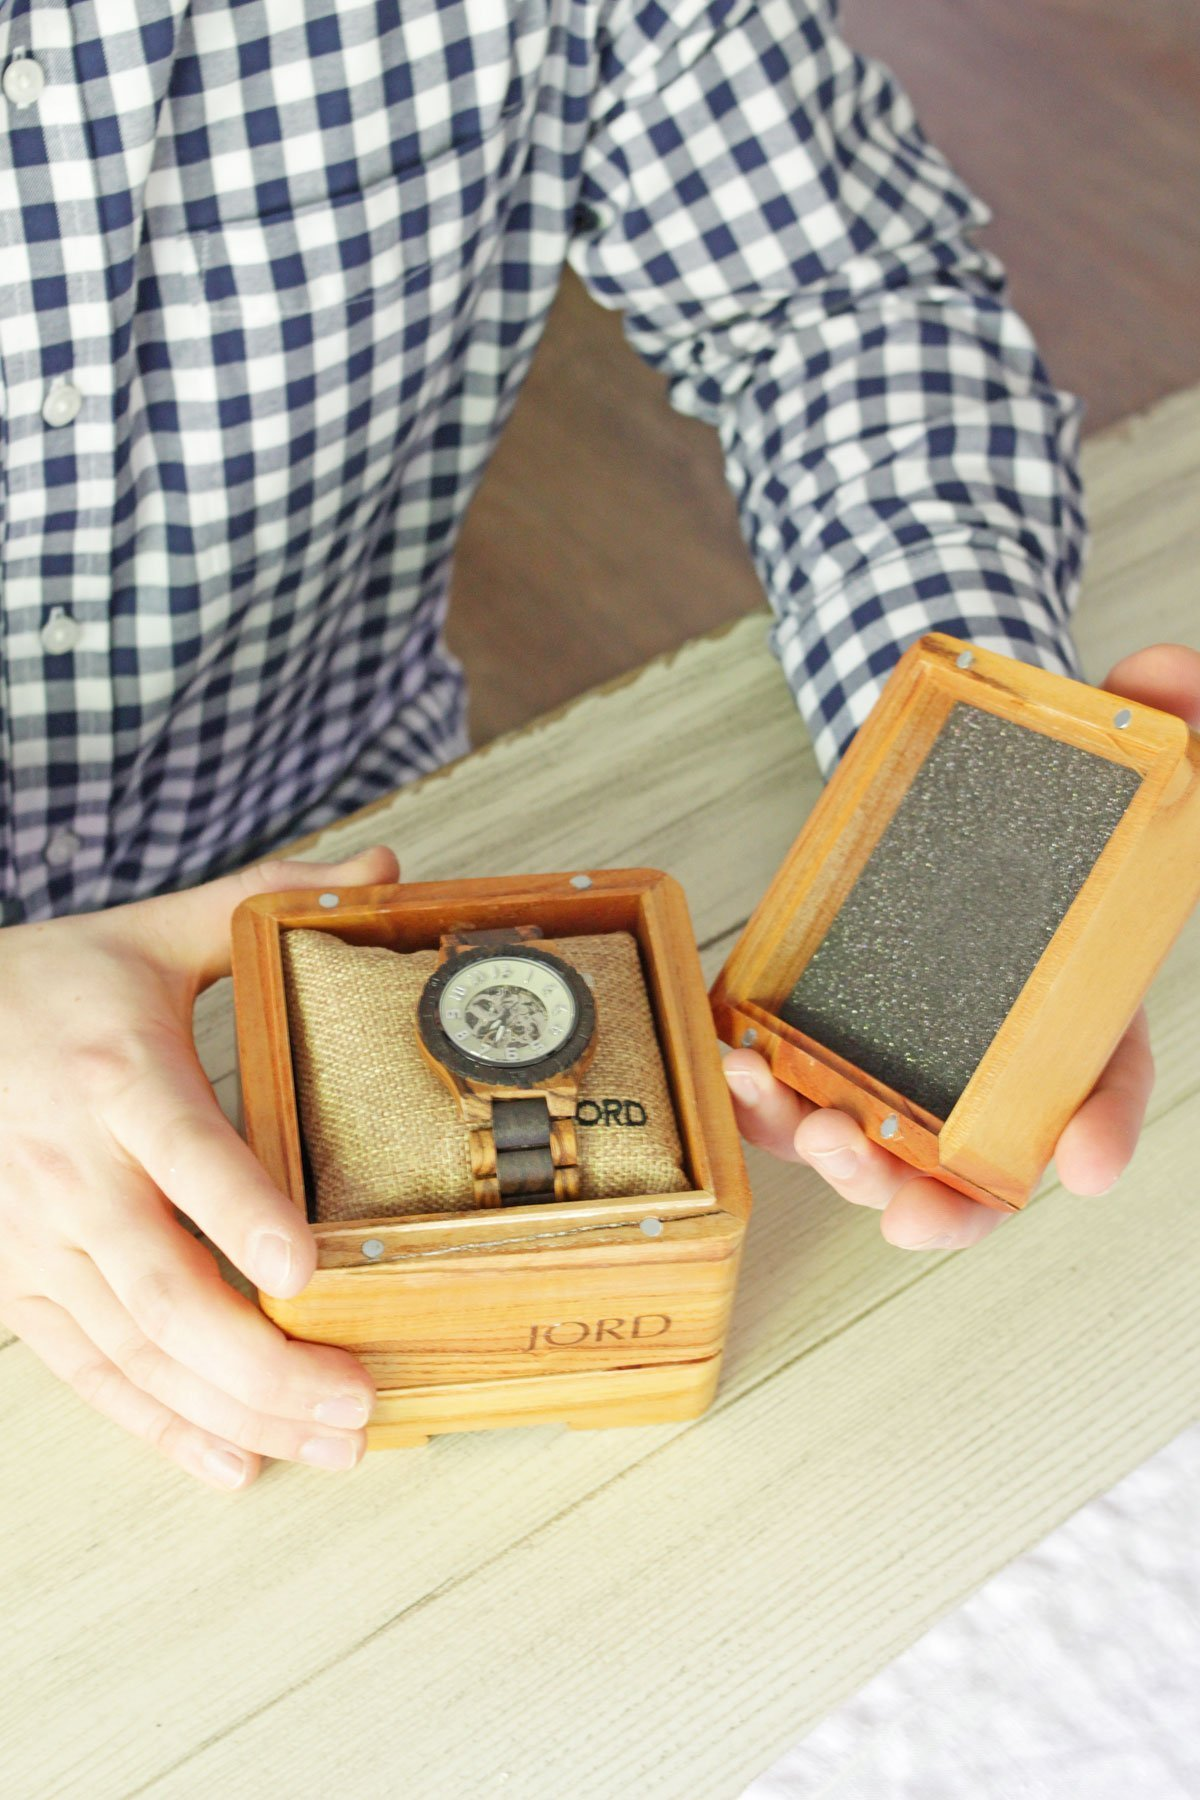 Celebrate Father's Day with JORD - Men's JORD Watch Dover Series Zebrawood & Dark Sandalwood